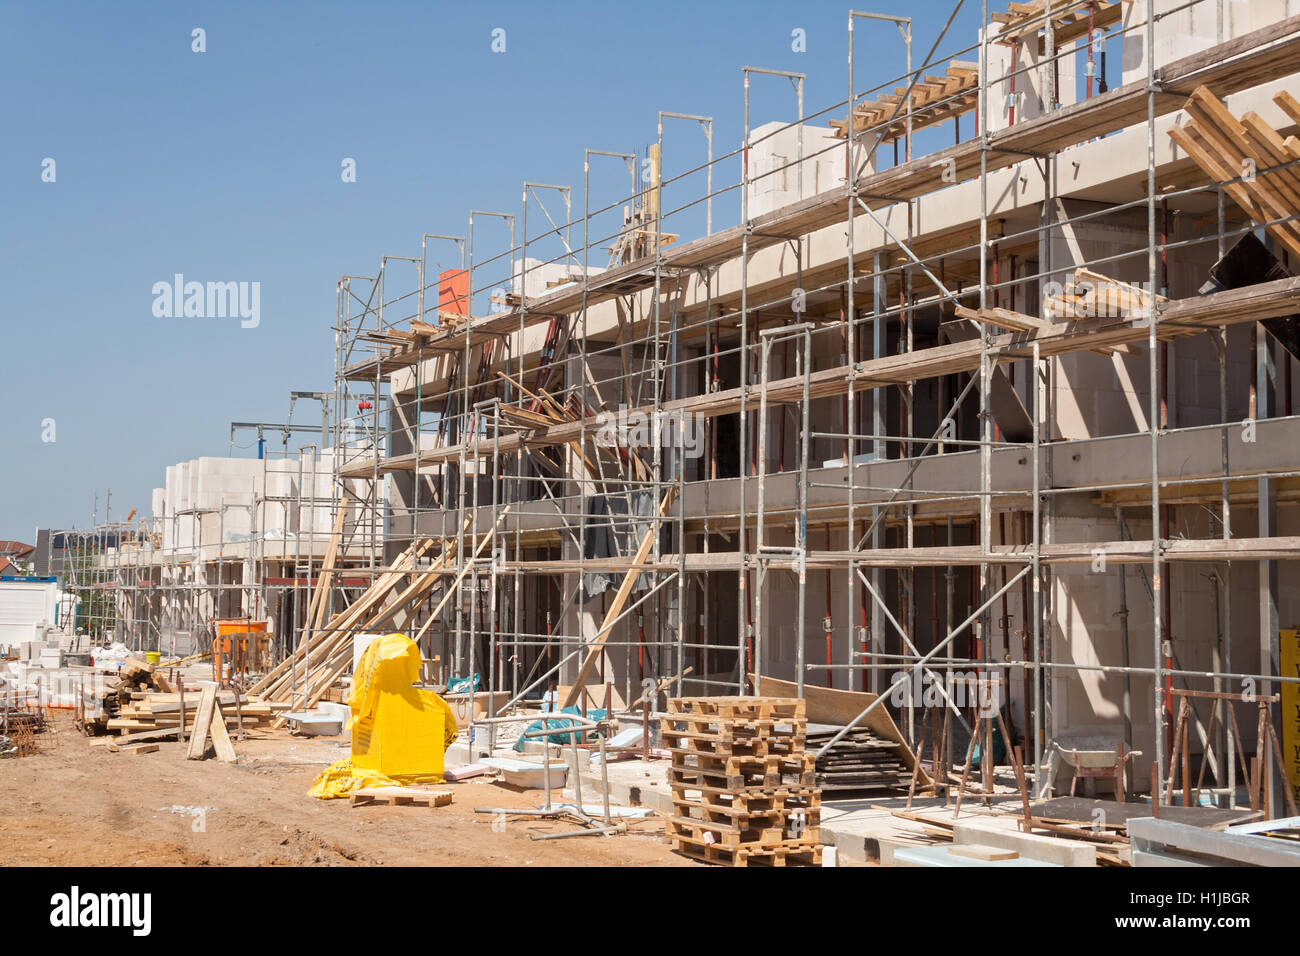 construction site of a new townhouse settlement - Stock Image